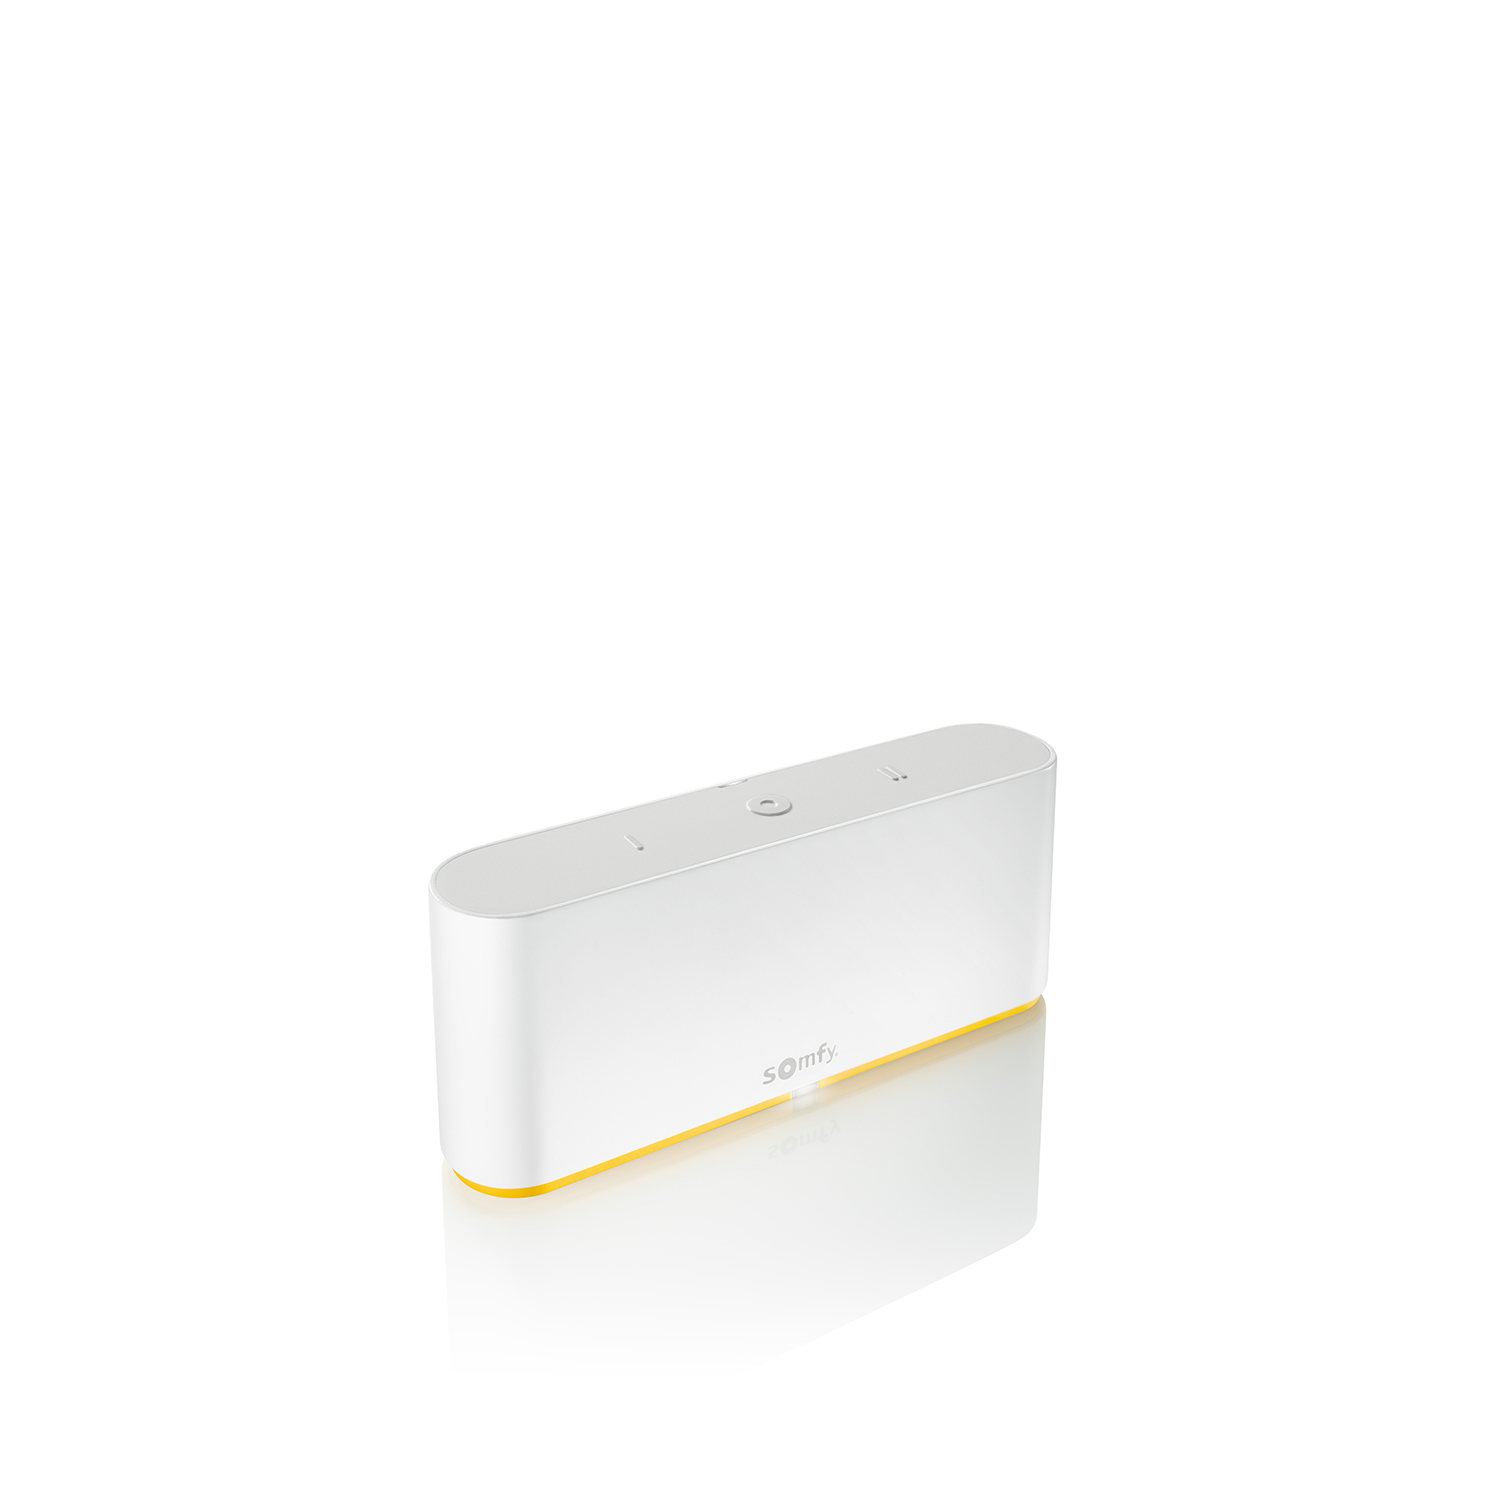 Die Smart-Home-Zentrale TaHoma Switch